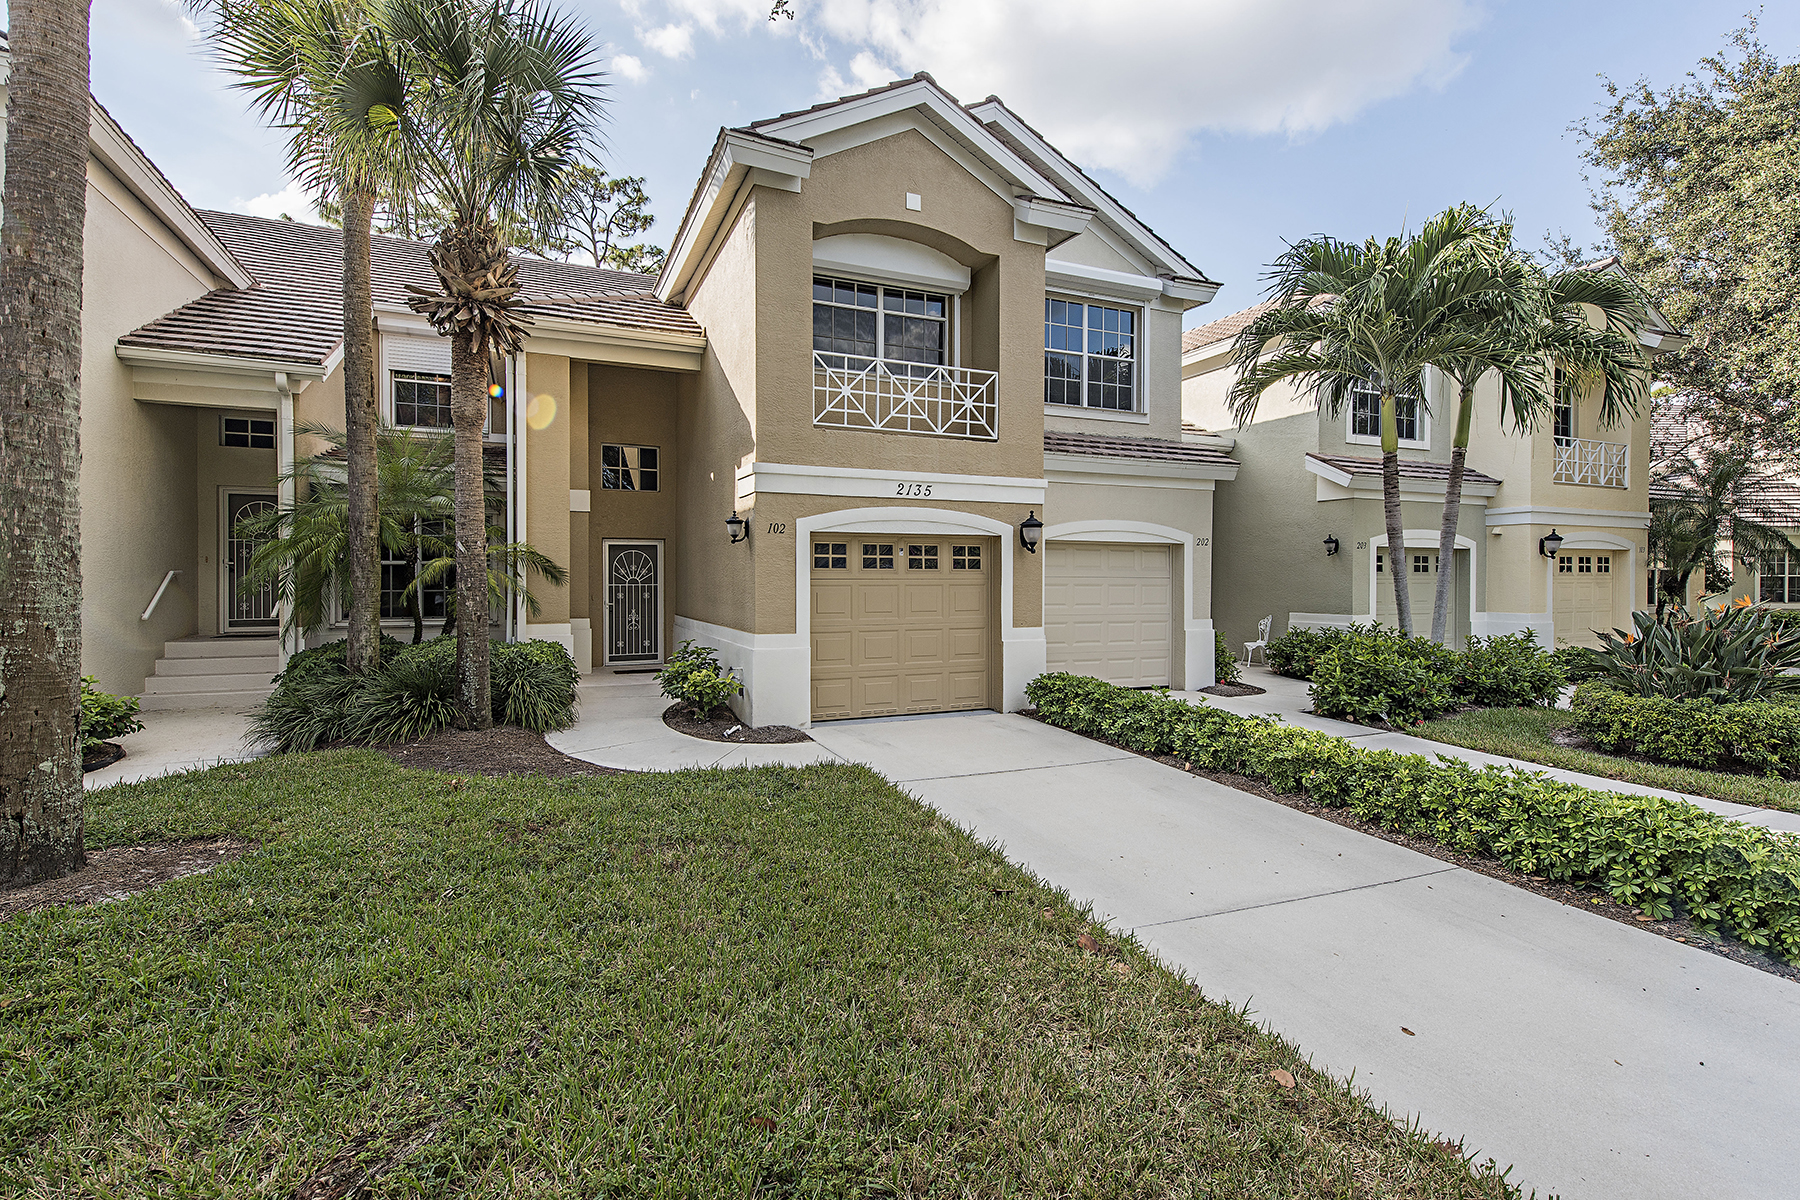 Condominium for Sale at STONEBRIDGE - MIDDLEBURG 2135 Aberdeen Ln 5-102, Naples, Florida 34109 United States